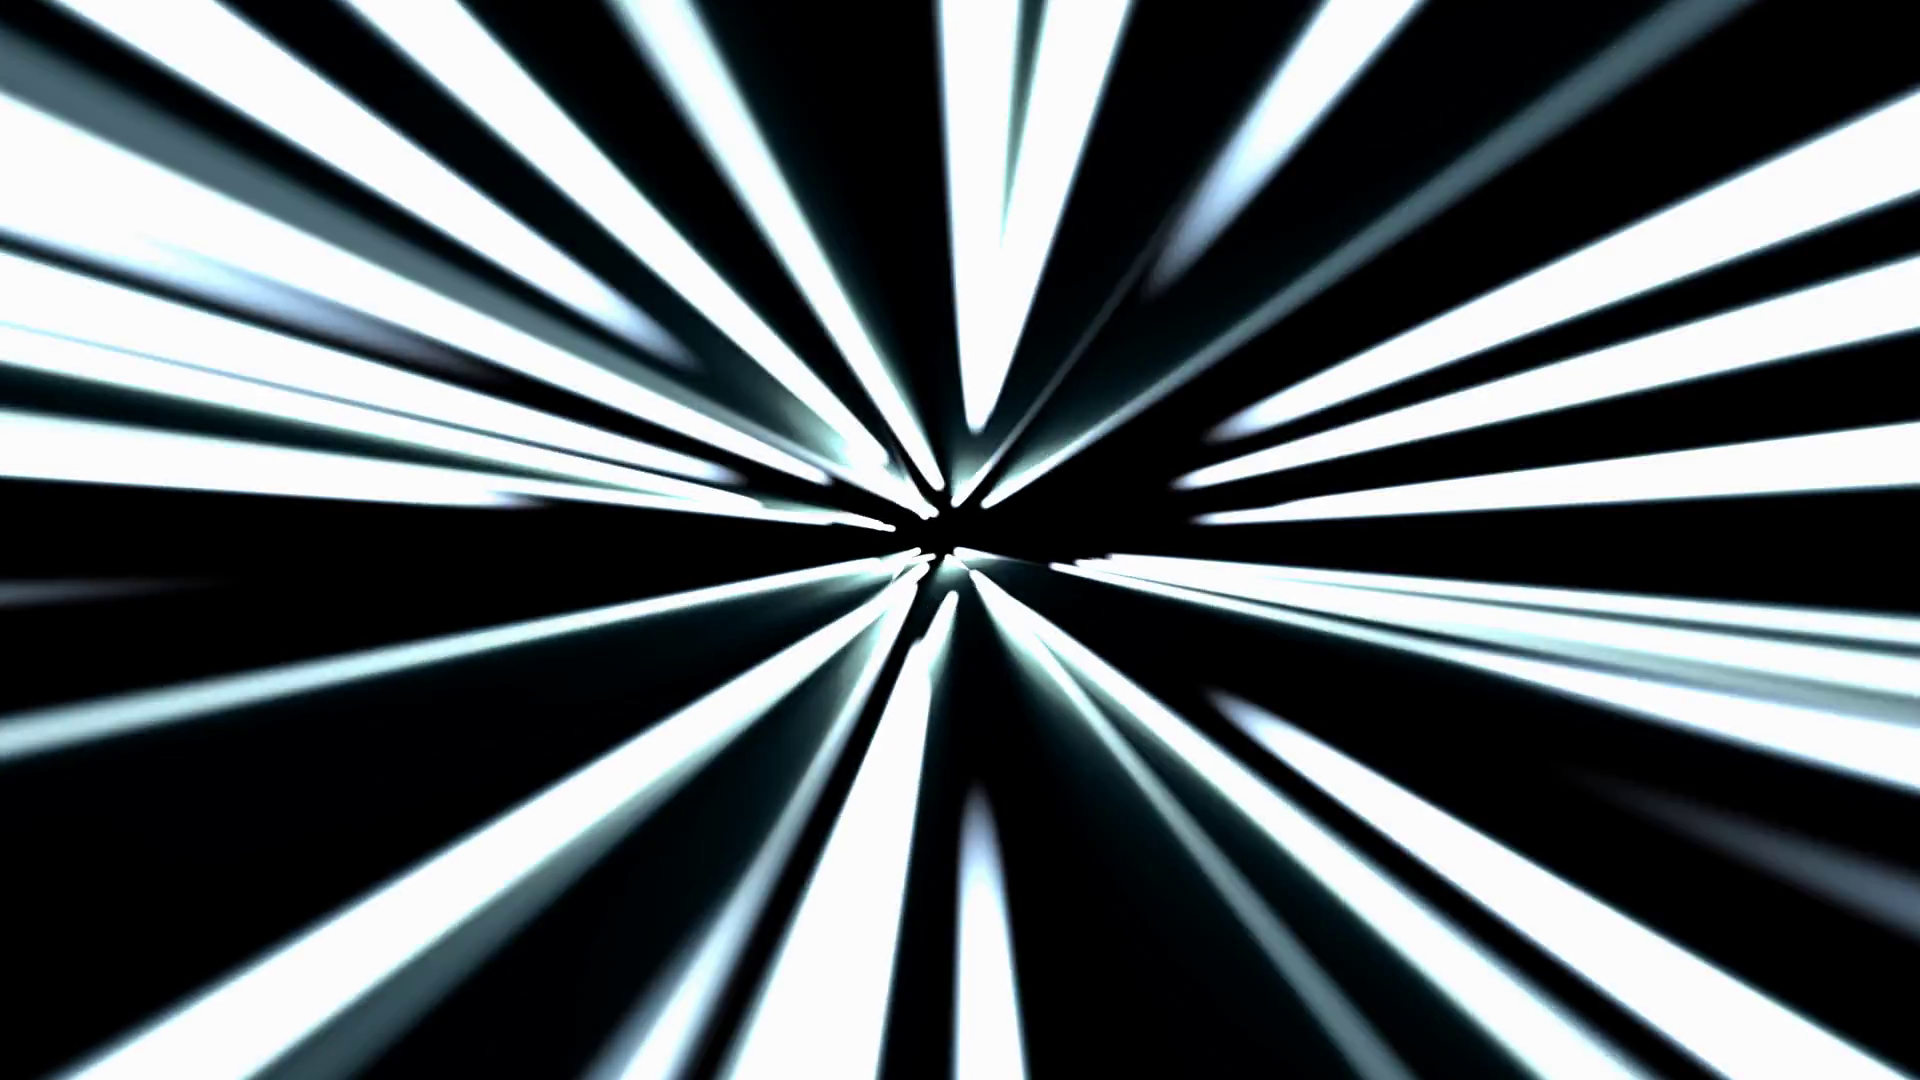 Hyperspace Jump Scene Of Overcoming The Temporary Space In Space Time Machine Hyperspace Jump 4k Abstract Video Animation Motion Background Storyblocks